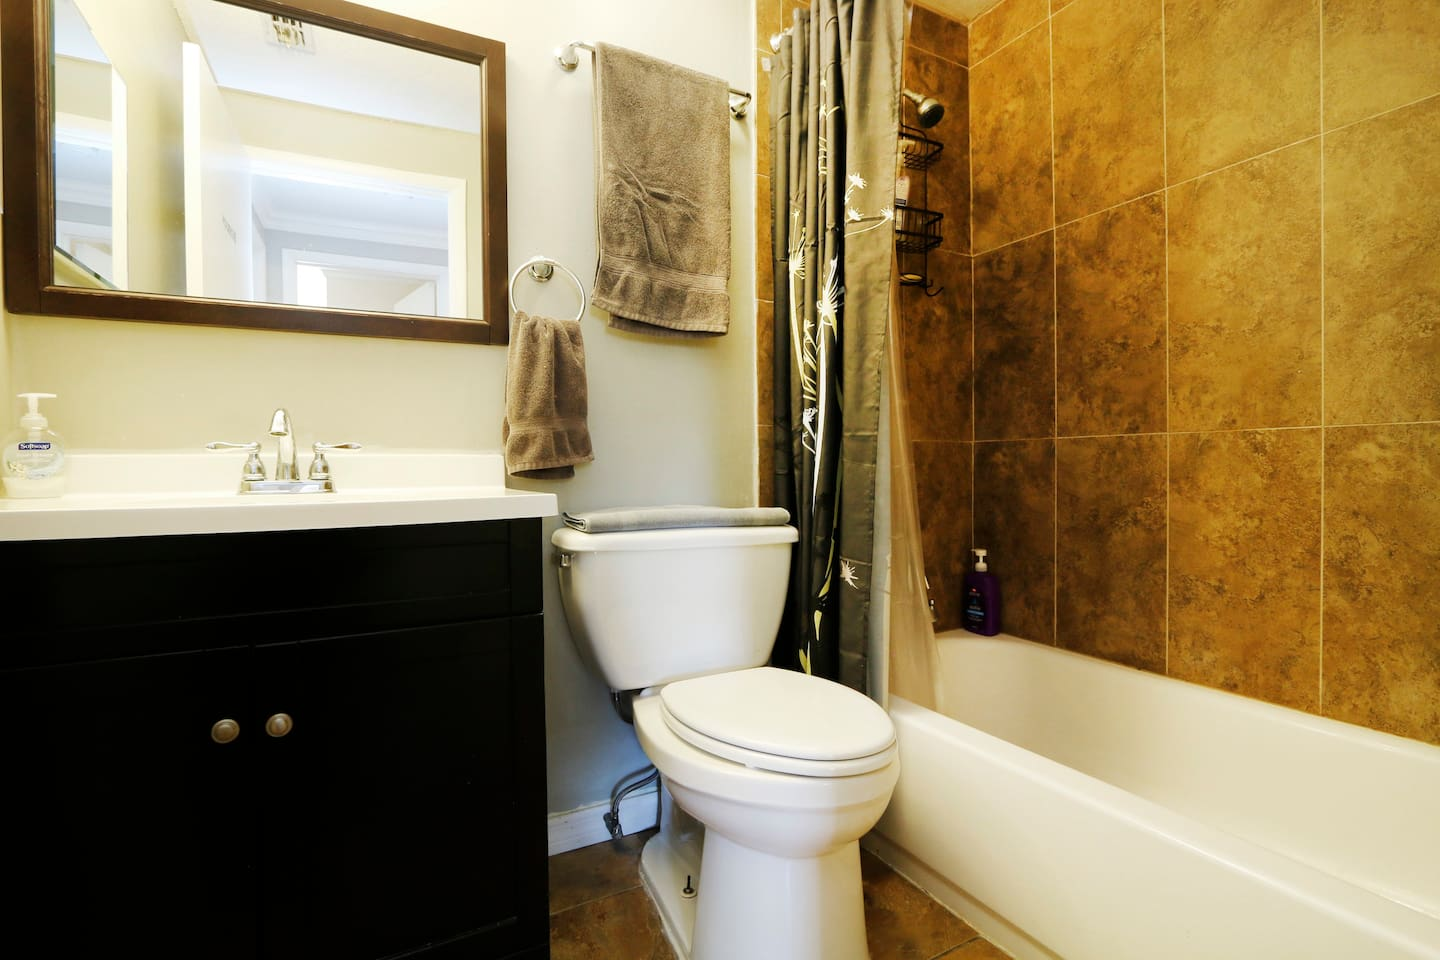 Contemporary main bathroom shared by bedrooms #2 and #3